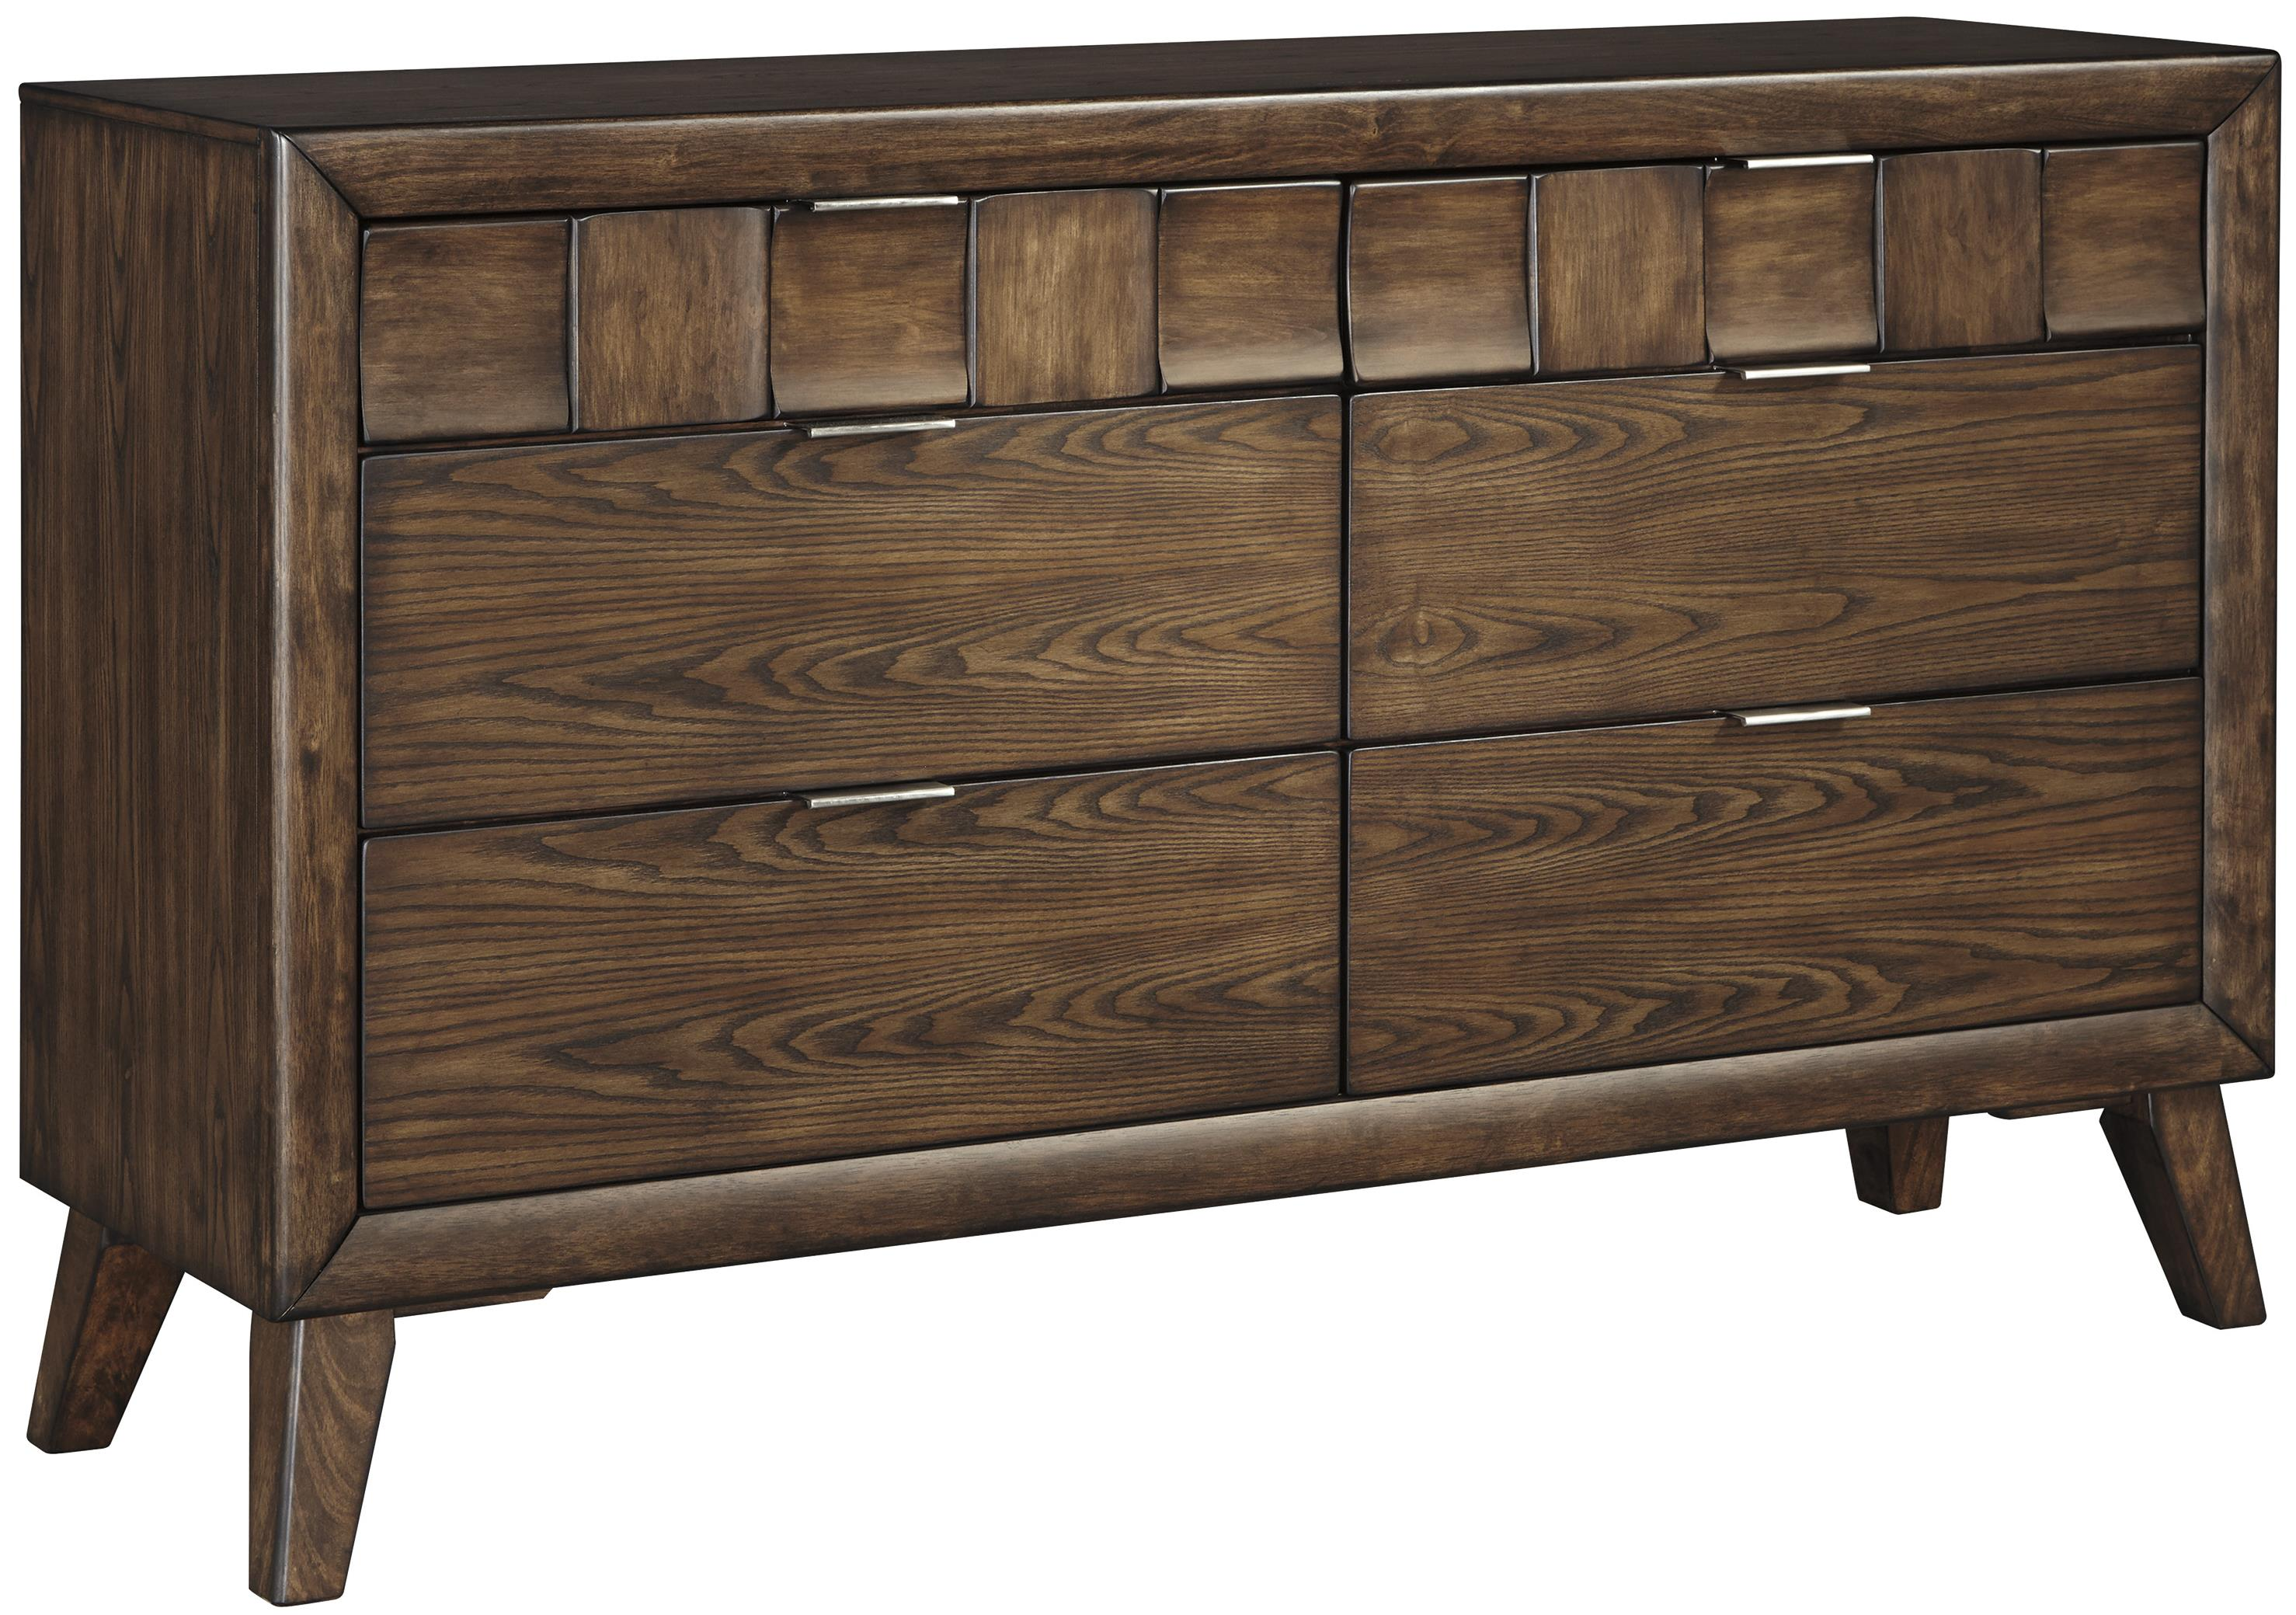 Signature Design by Ashley Debeaux Dresser - Item Number: B535-31